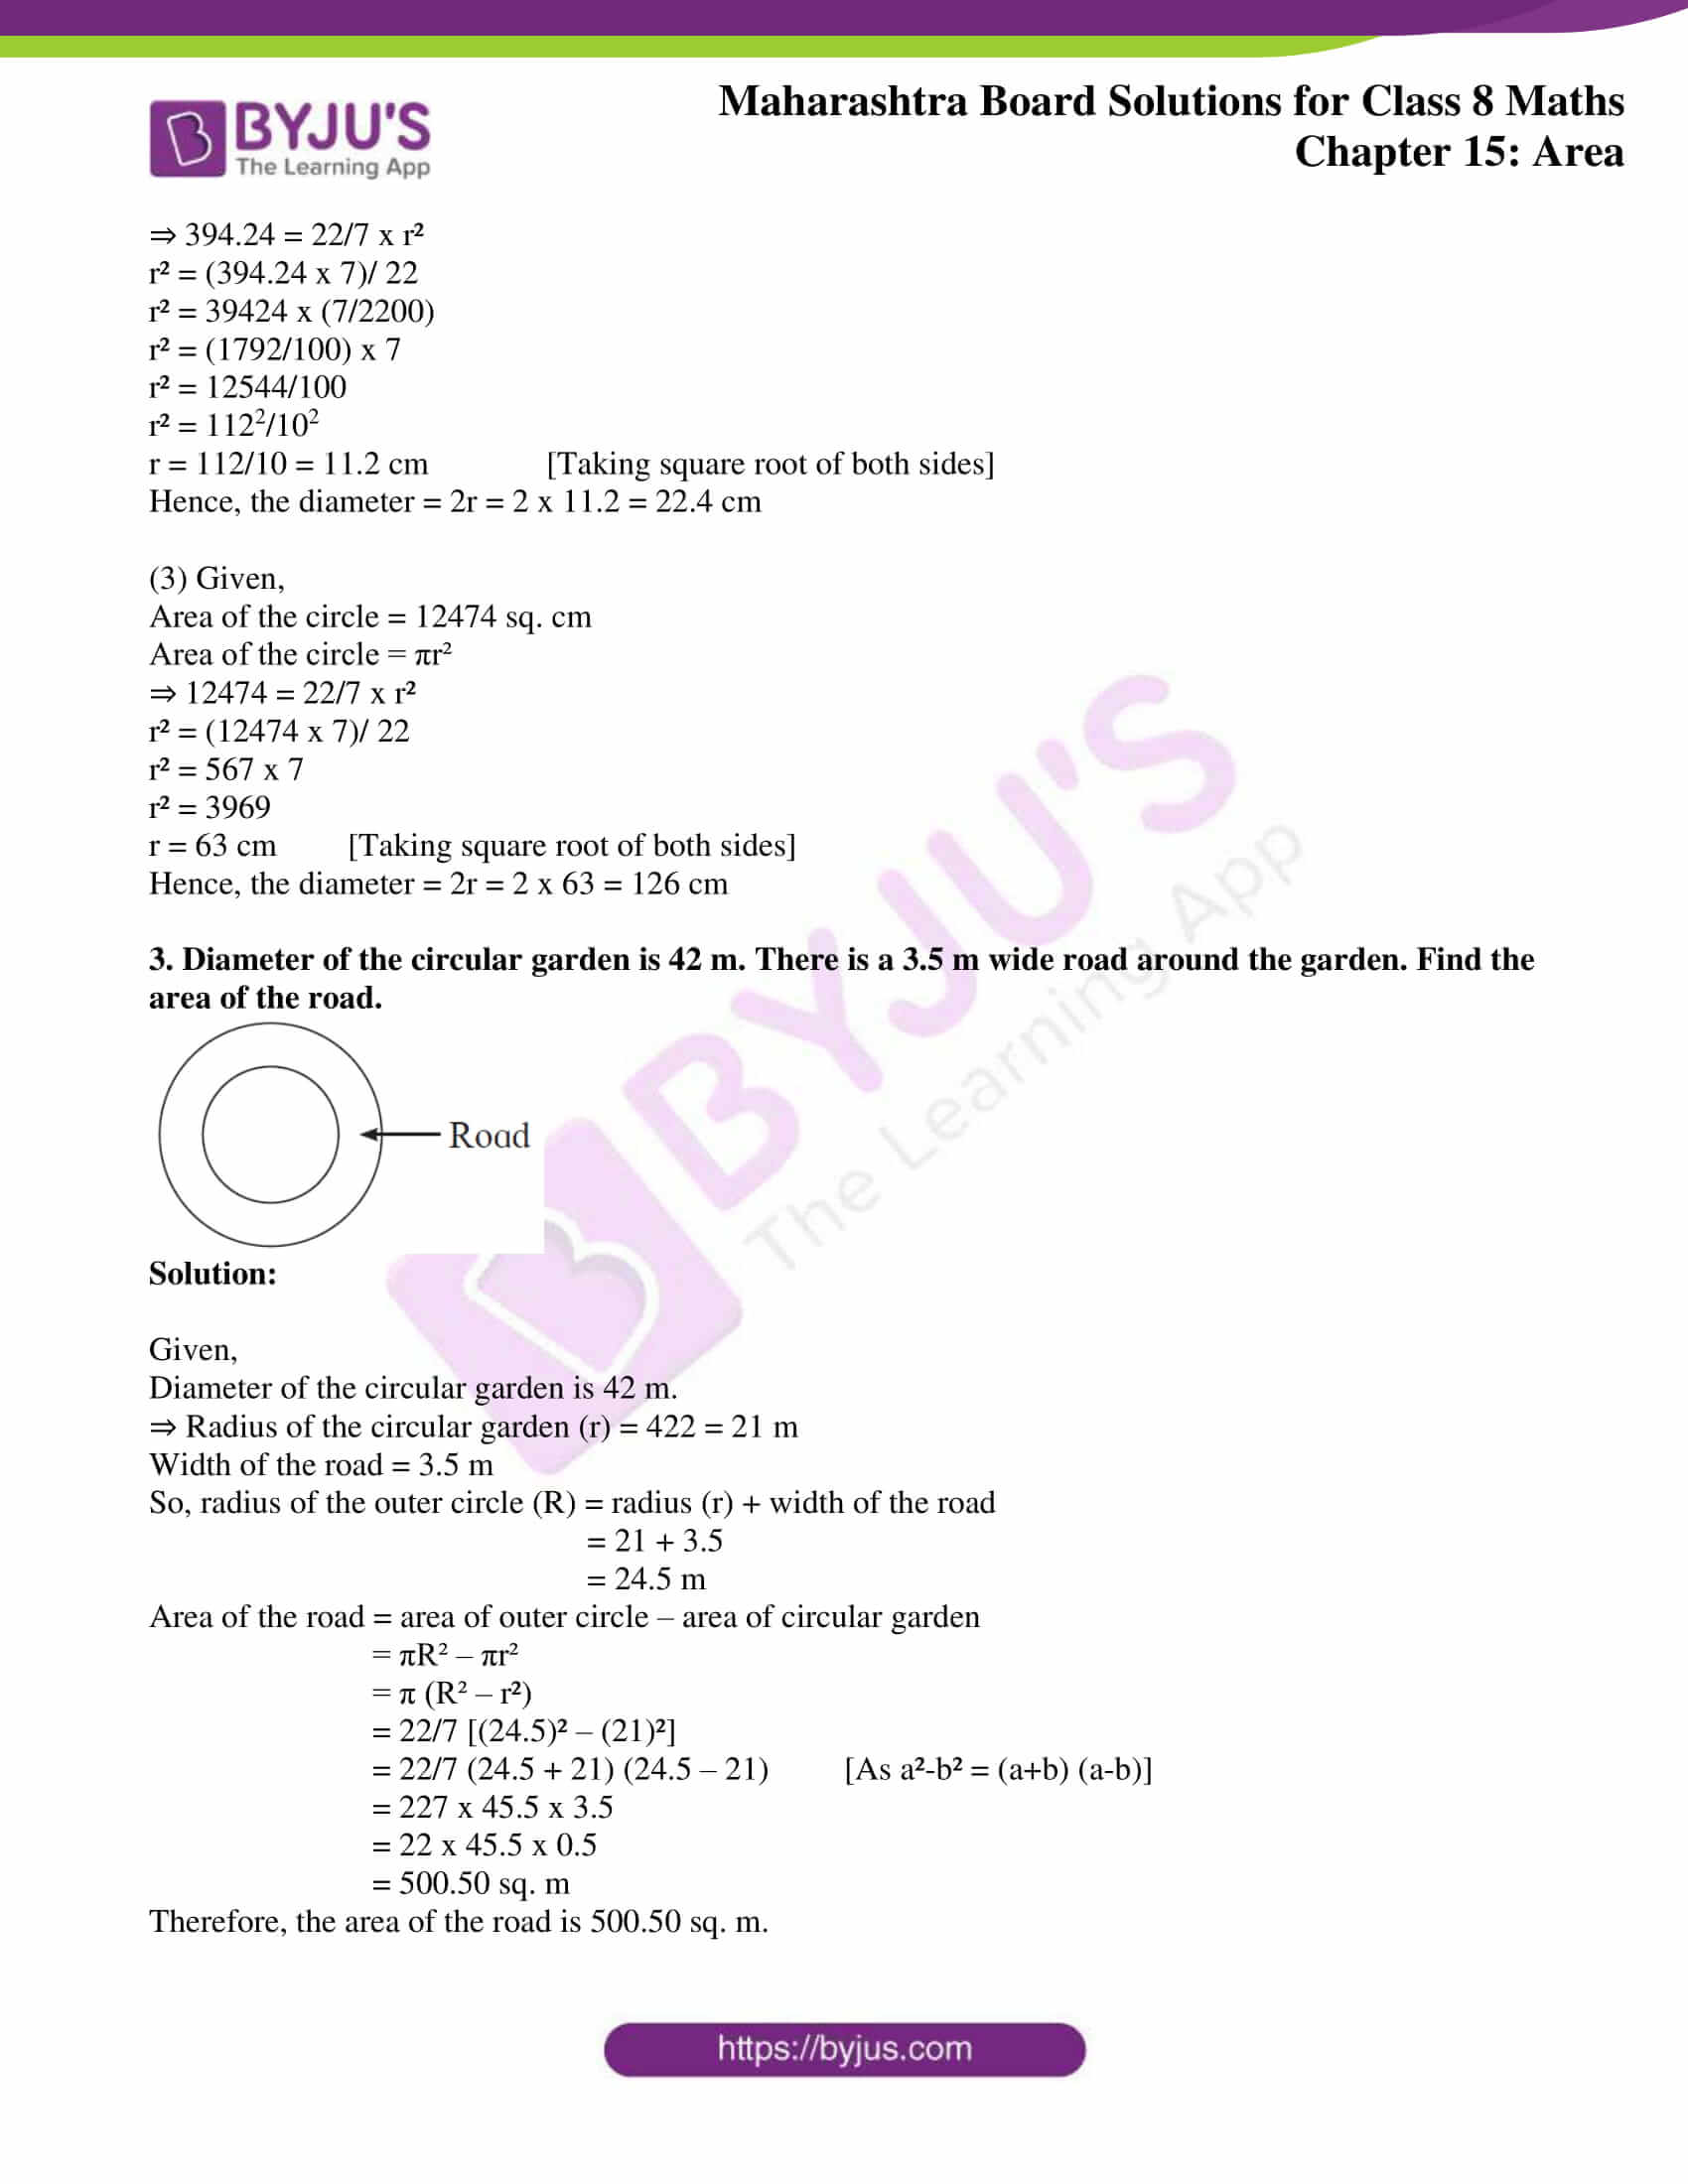 msbshse sol for class 8 maths chapter 15 12